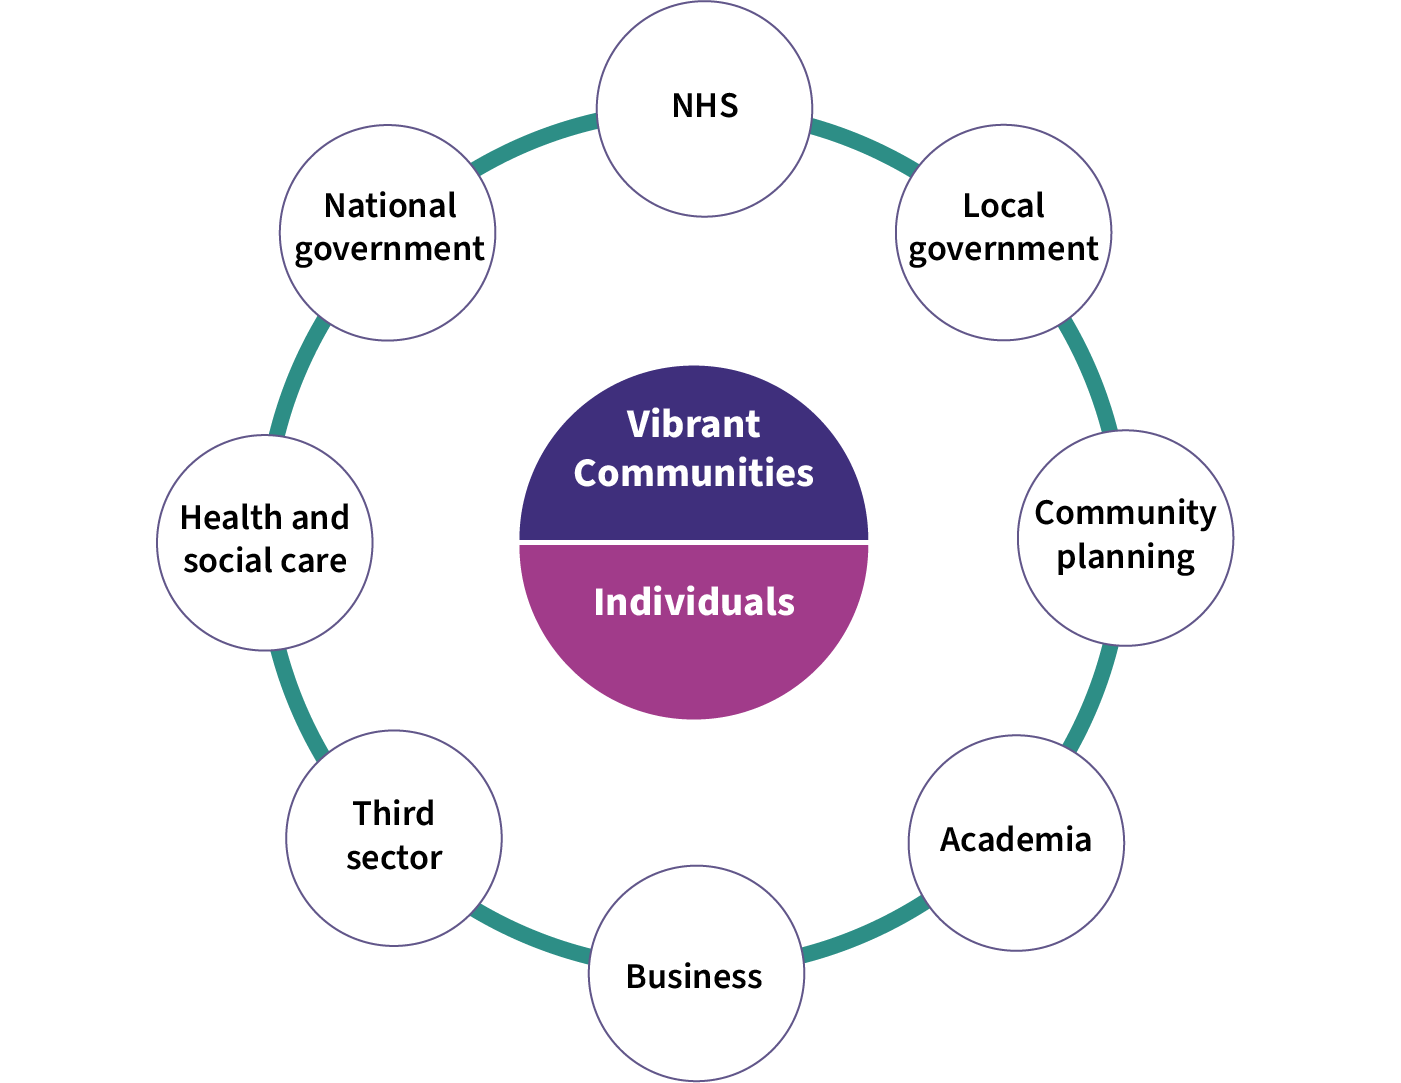 PHS will work with the NHS, Local Government, Community planning, academia, business, the third sector, health and social care and National Government